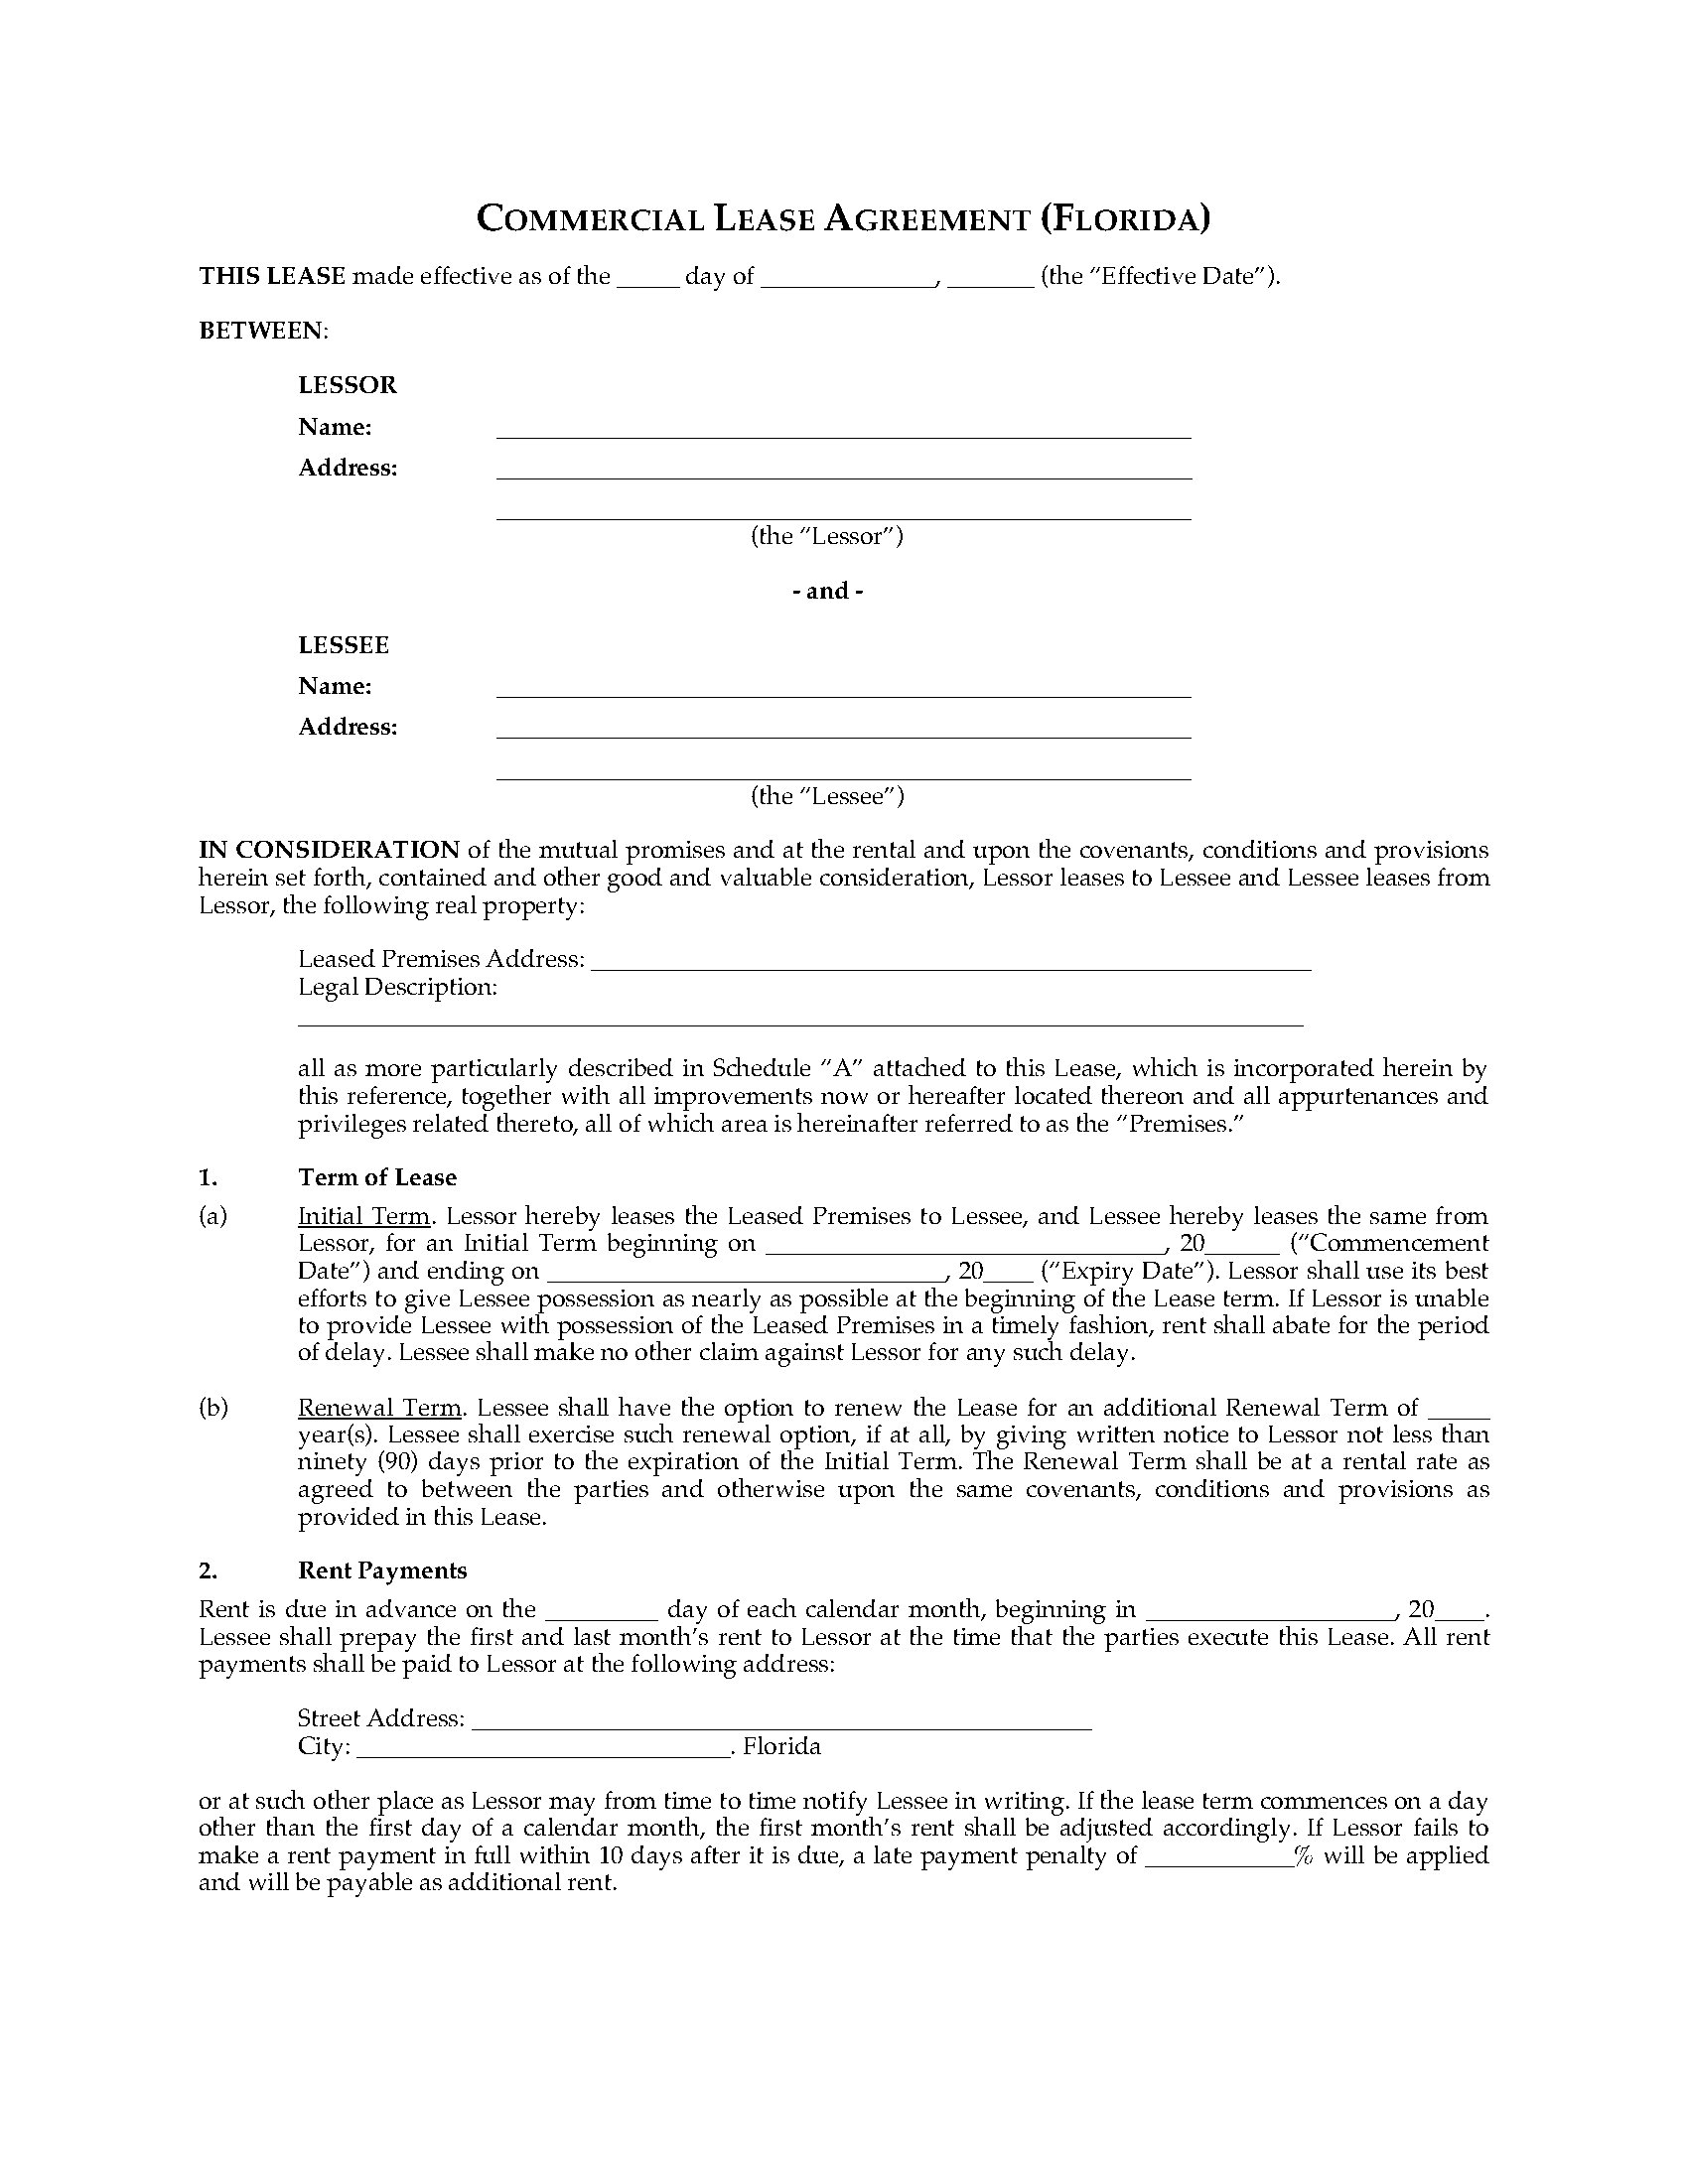 Florida Commercial Triple Net Lease Agreement – Net Lease Agreement Template